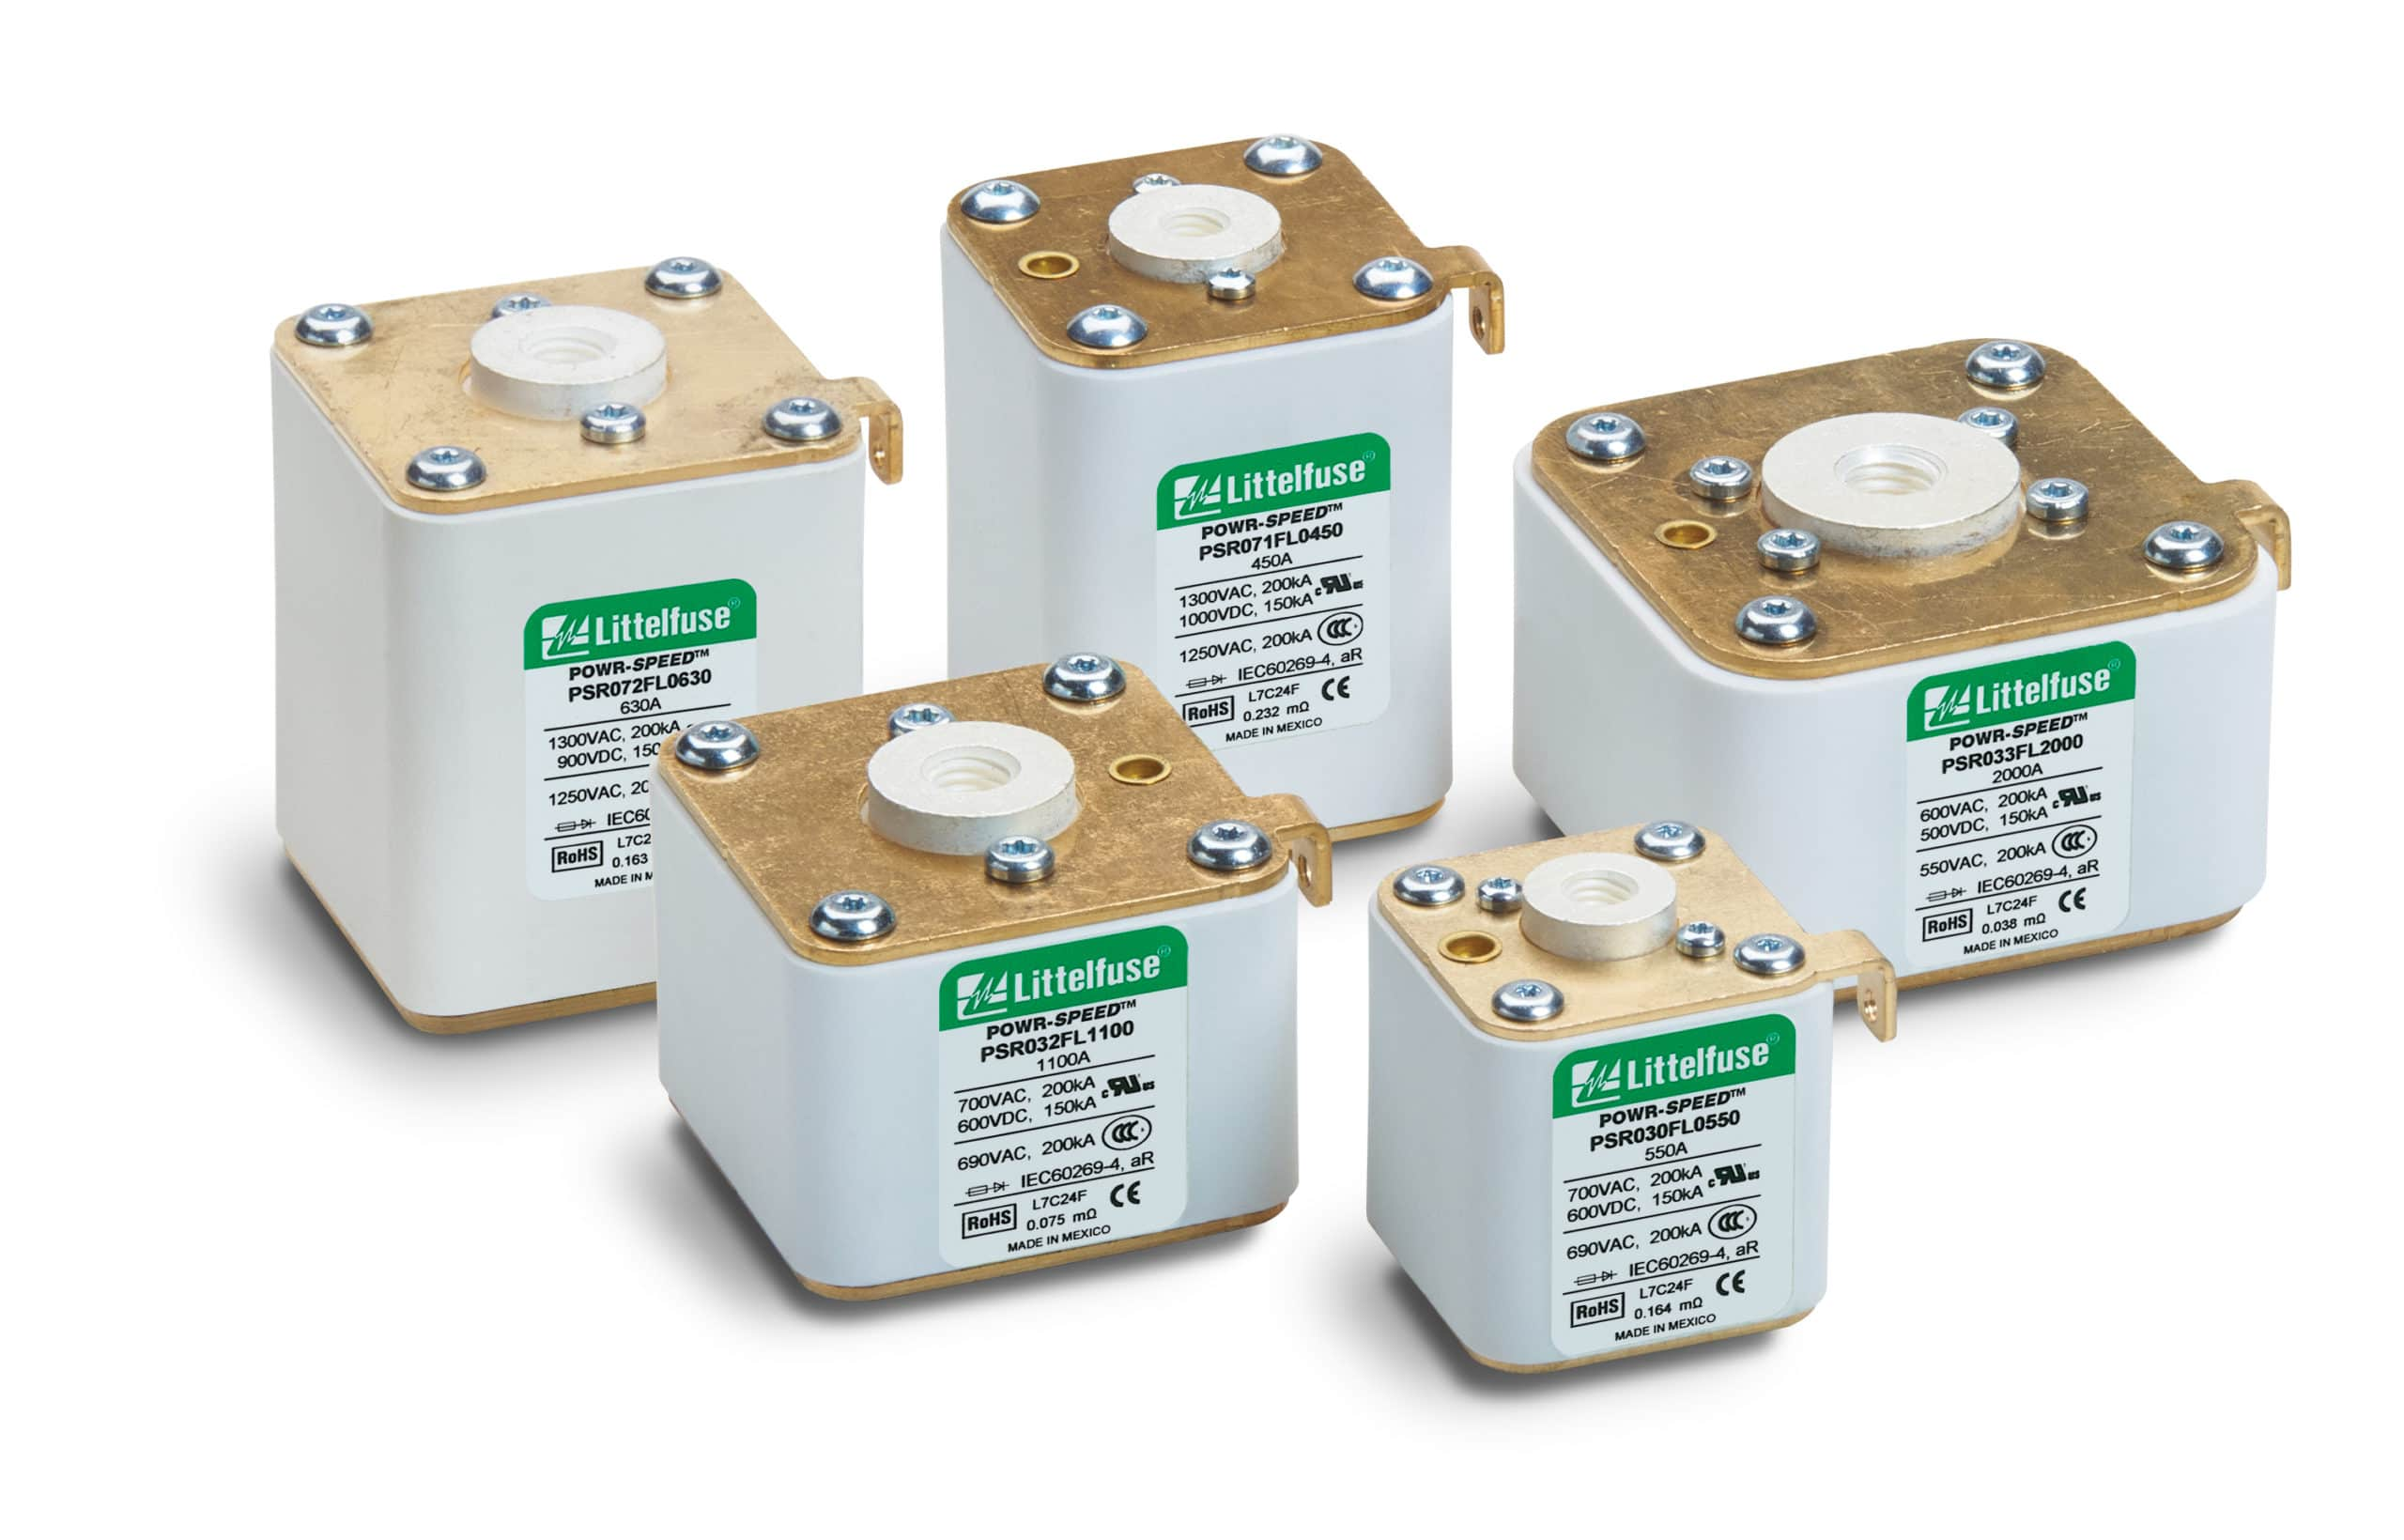 Littelfuse Expands Award-winning High-Speed Fuses for Semiconductor Device Protection